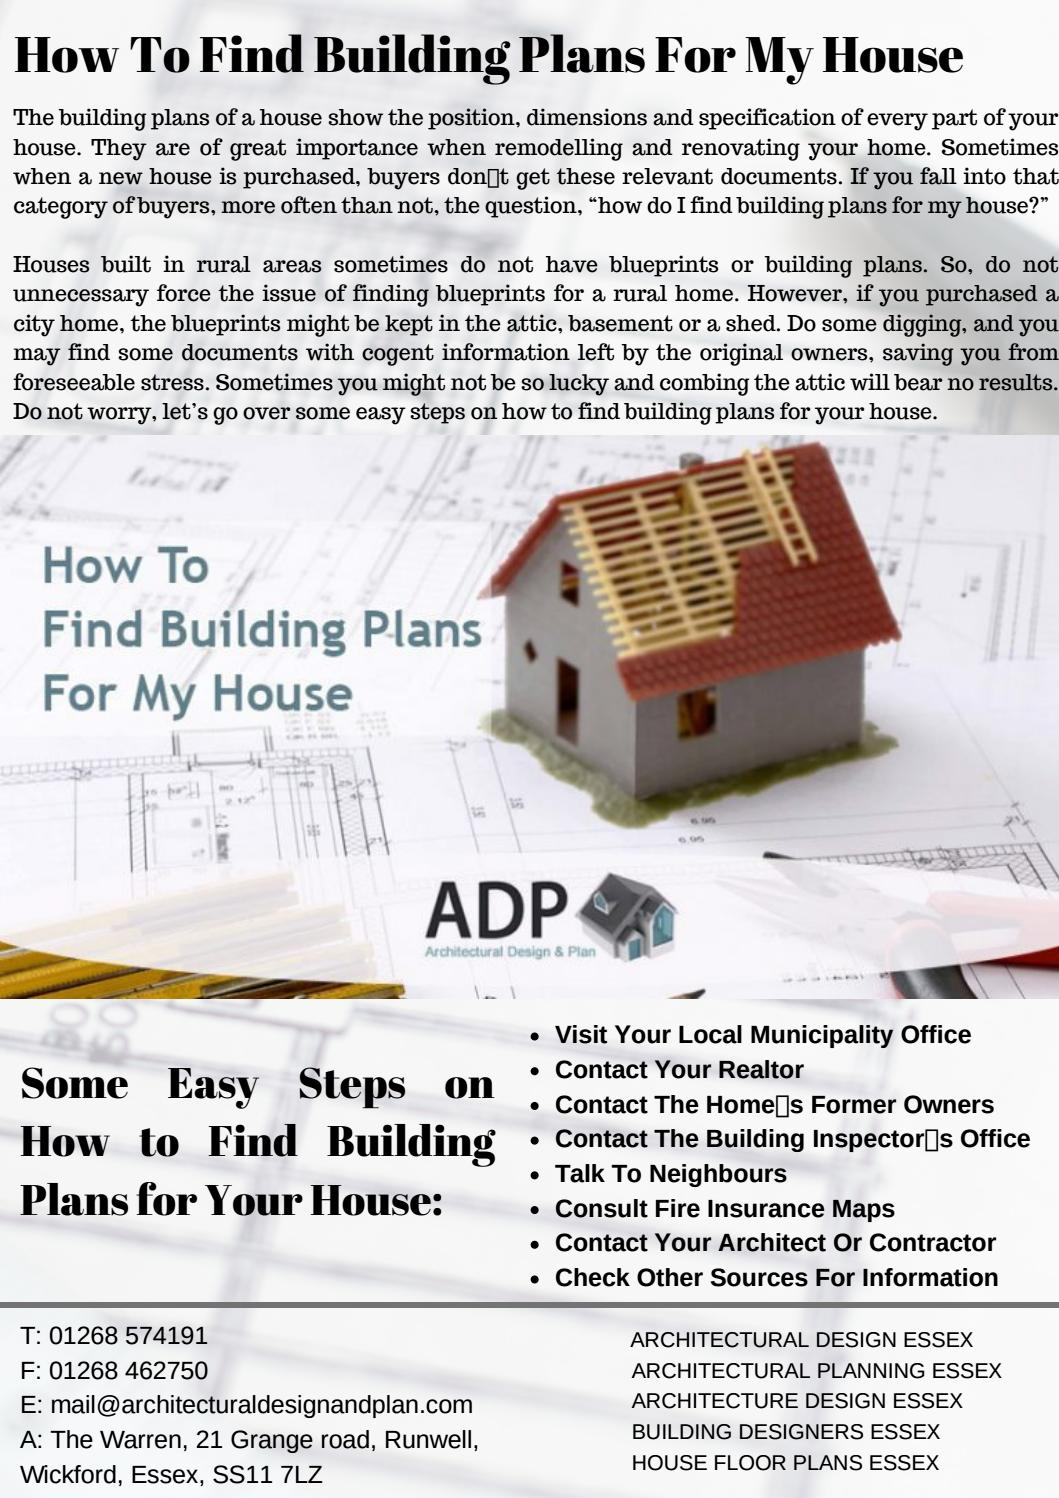 How To Find Building Plans For My House By Architecturaldesign63 Issuu